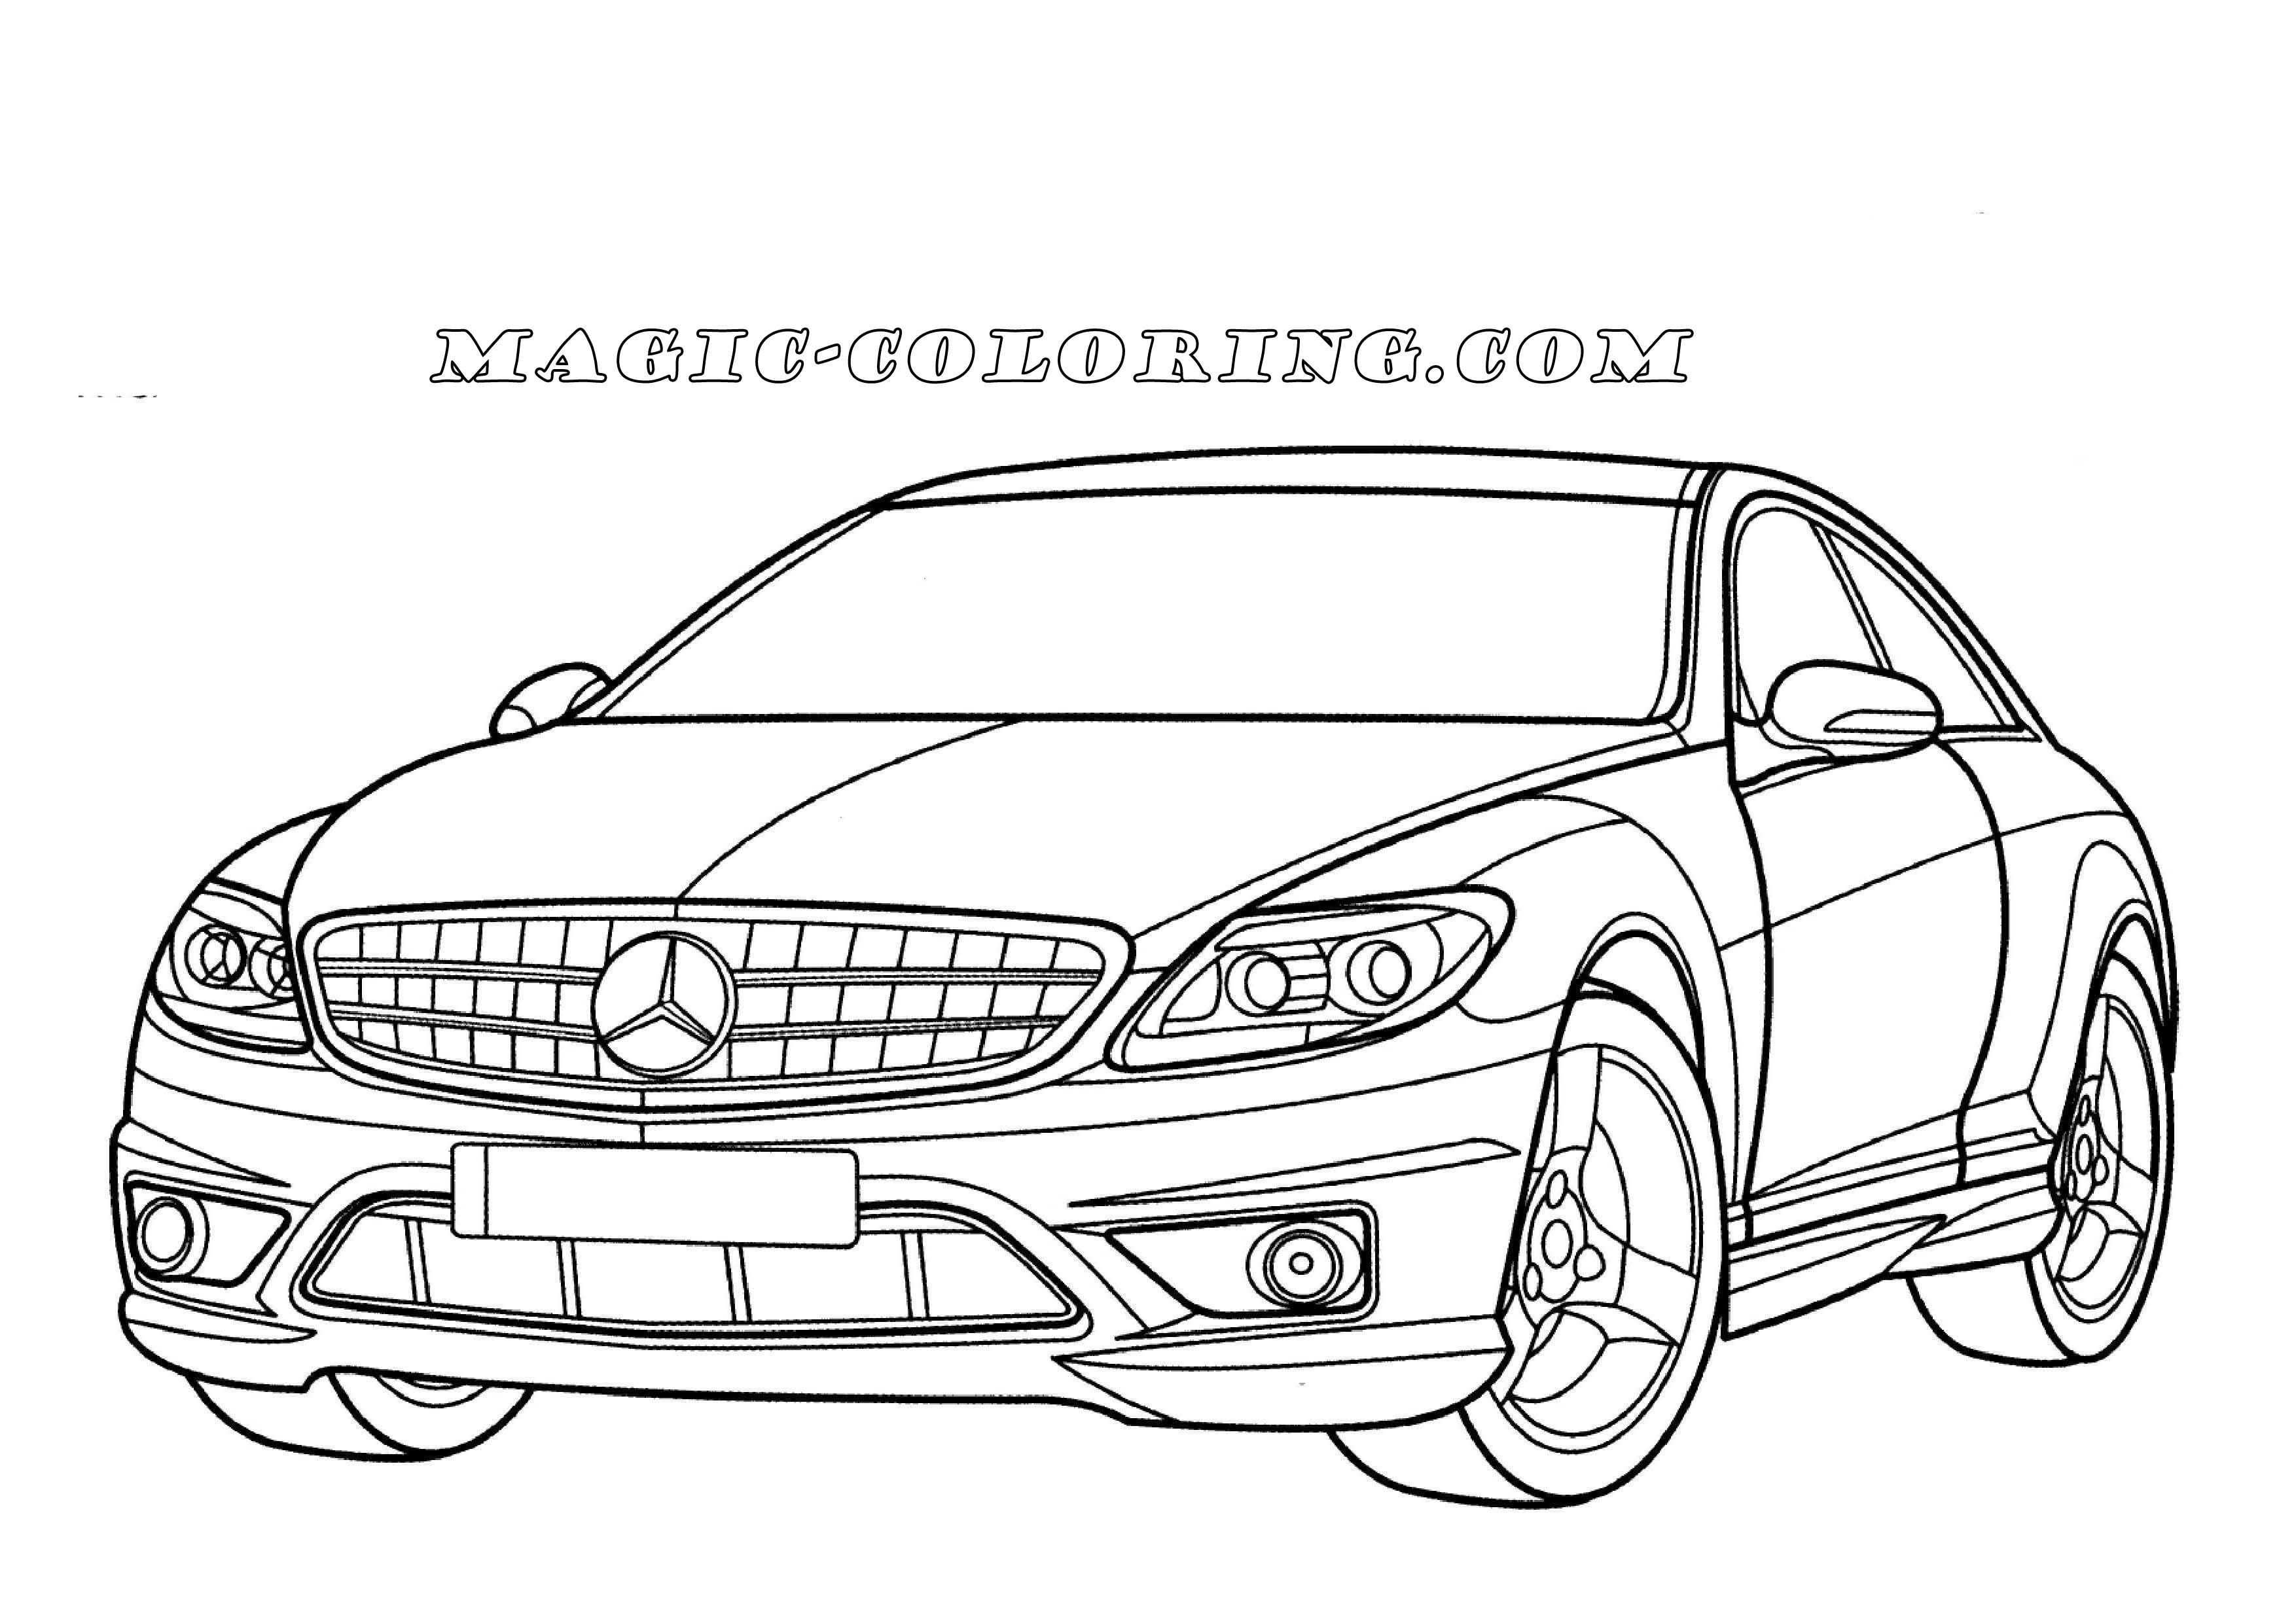 Mercedes Benz Cl Class Coloring Page Cars Coloring Pages Mercedes Car Drawings